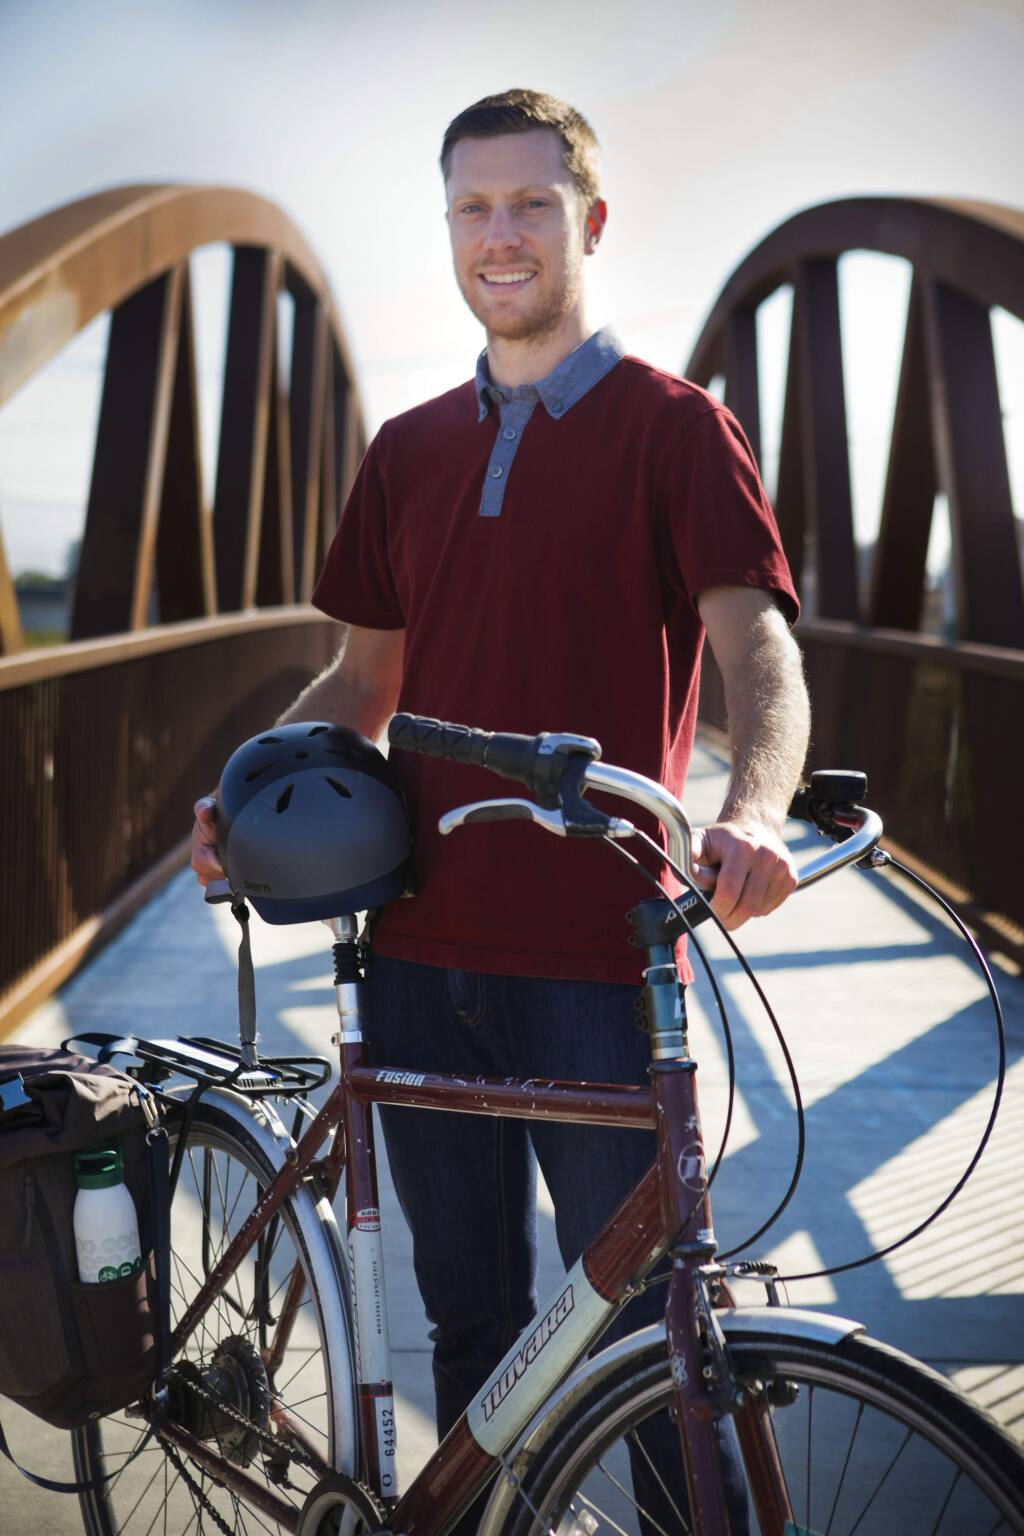 Petaluma, CA, USA. Monday, July 10, 2017._ Bjorn Griepenburg who was born and raised in Petaluma is an advocate for creating a more bike friendly city. (CRISSY PASCUAL/ARGUS-COURIER STAFF)